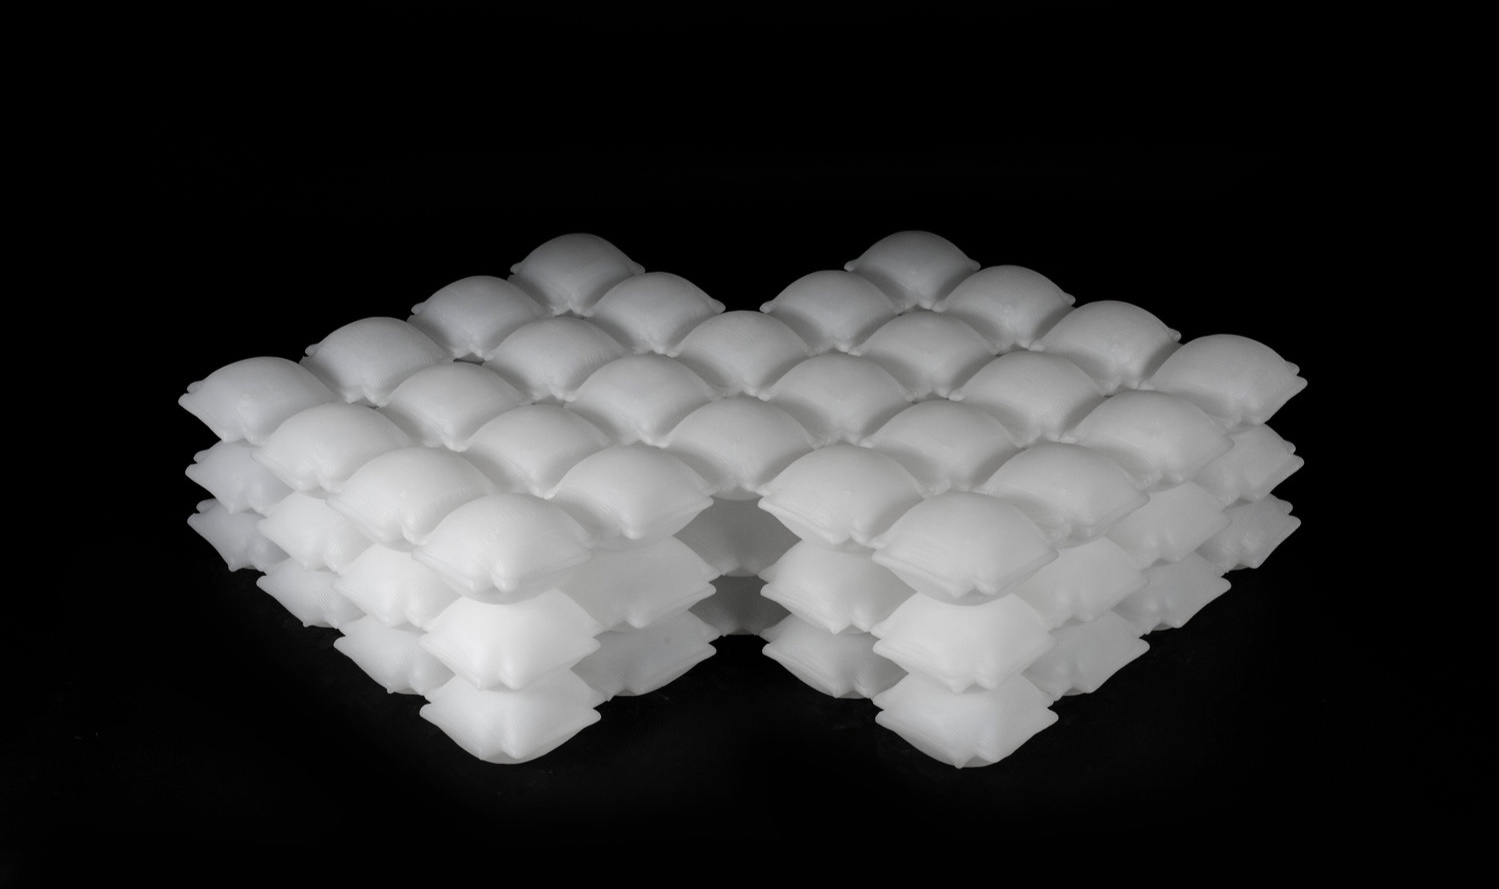 Self-inflatable fabrics will soon be a big deal soon. Image courtesy of BMW and MIT's Self-Assembly Lab.